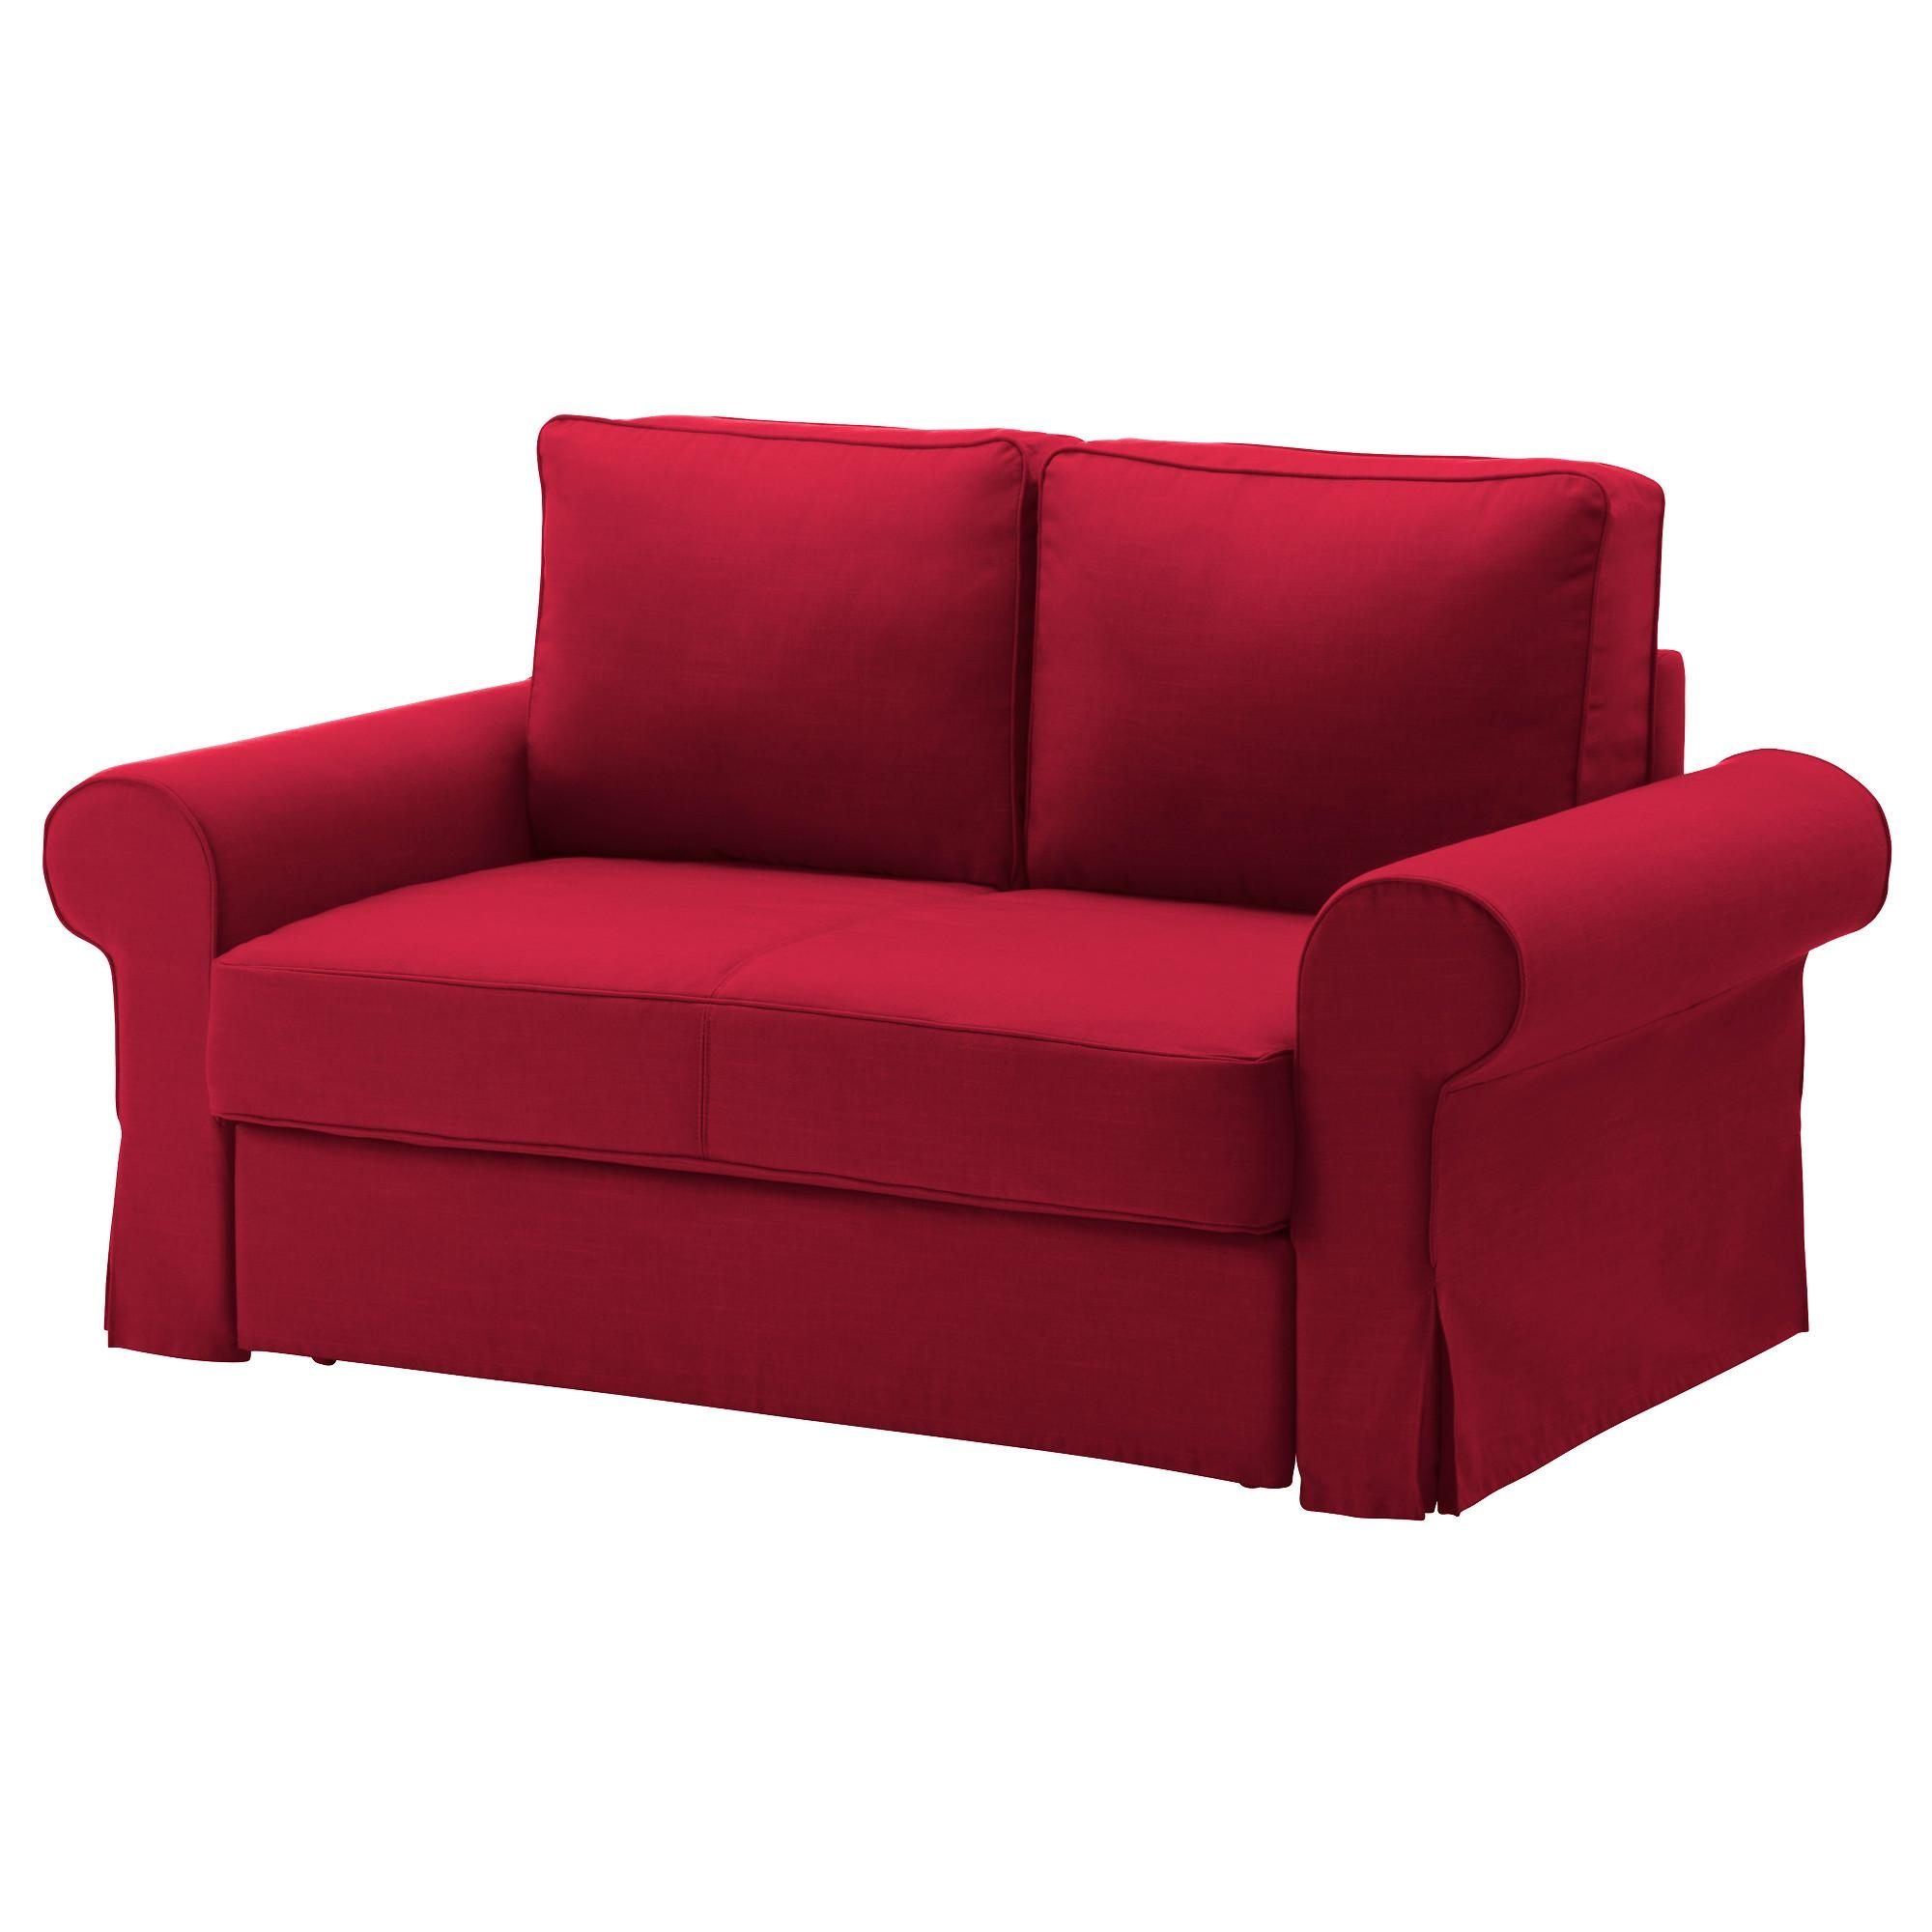 Backabro Two Seat Sofa Bed Nordvalla Red – Ikea Throughout Red Sofa Beds Ikea (Image 2 of 20)